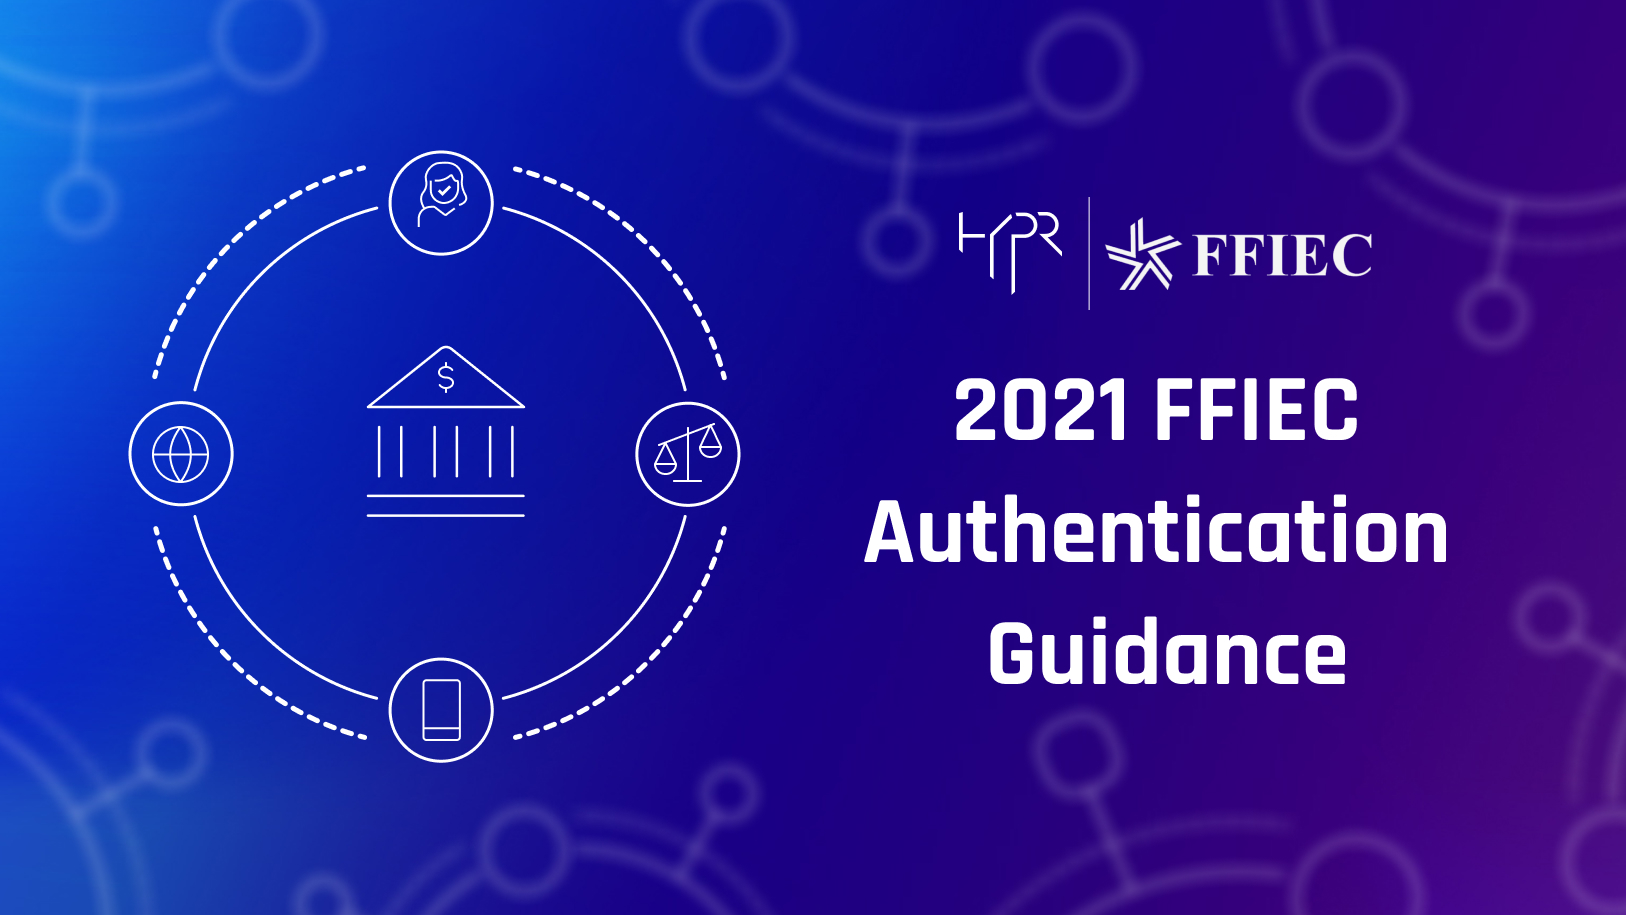 Image for FFIEC Authentication Guidance